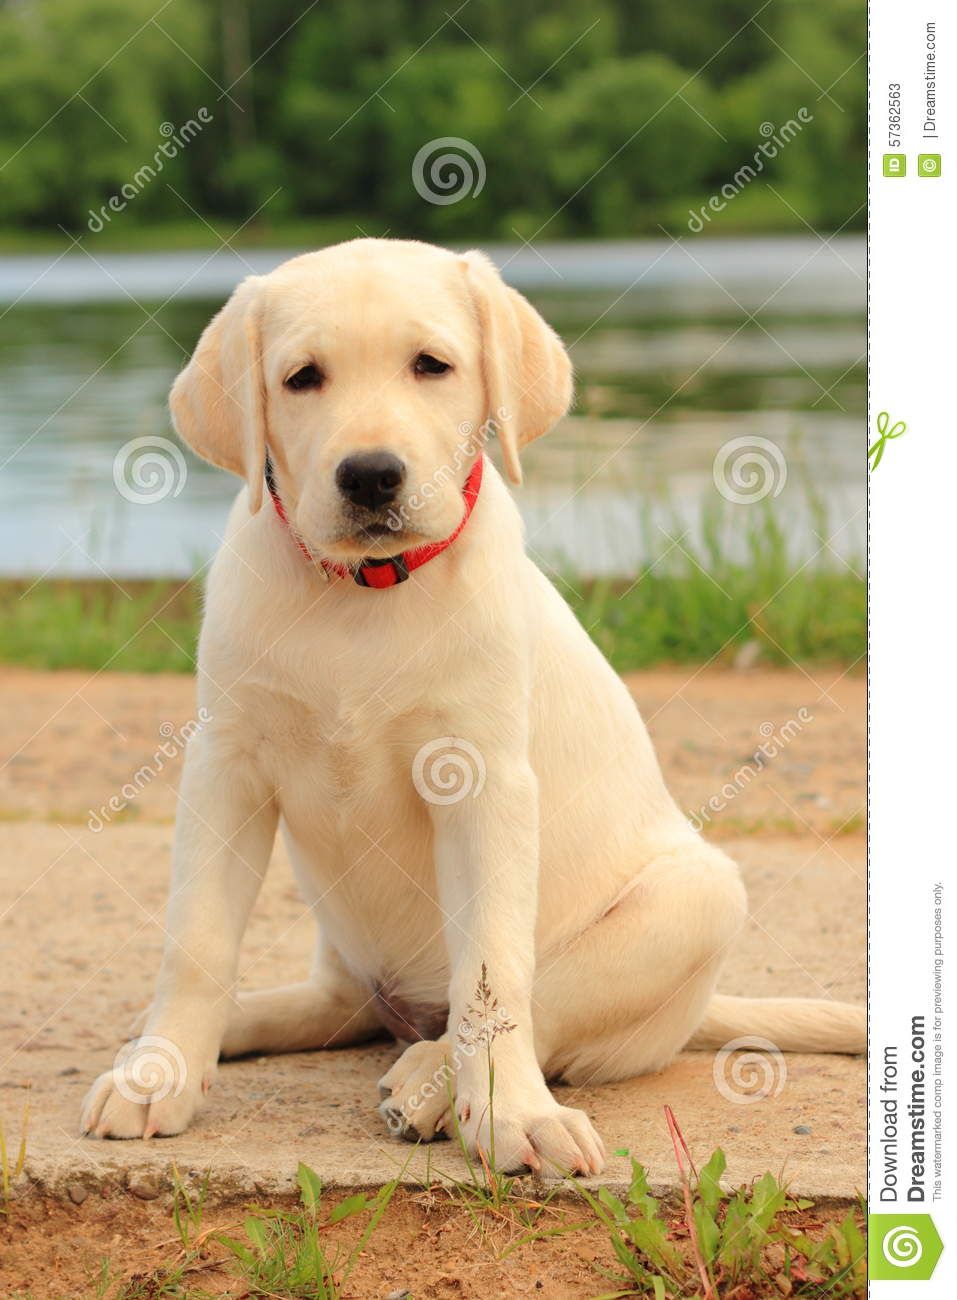 Labrador, Dog, Puppy, Pet, Cute, Pale Stock Image - Image of walk ... for Cute Lab Dog Puppy  568zmd